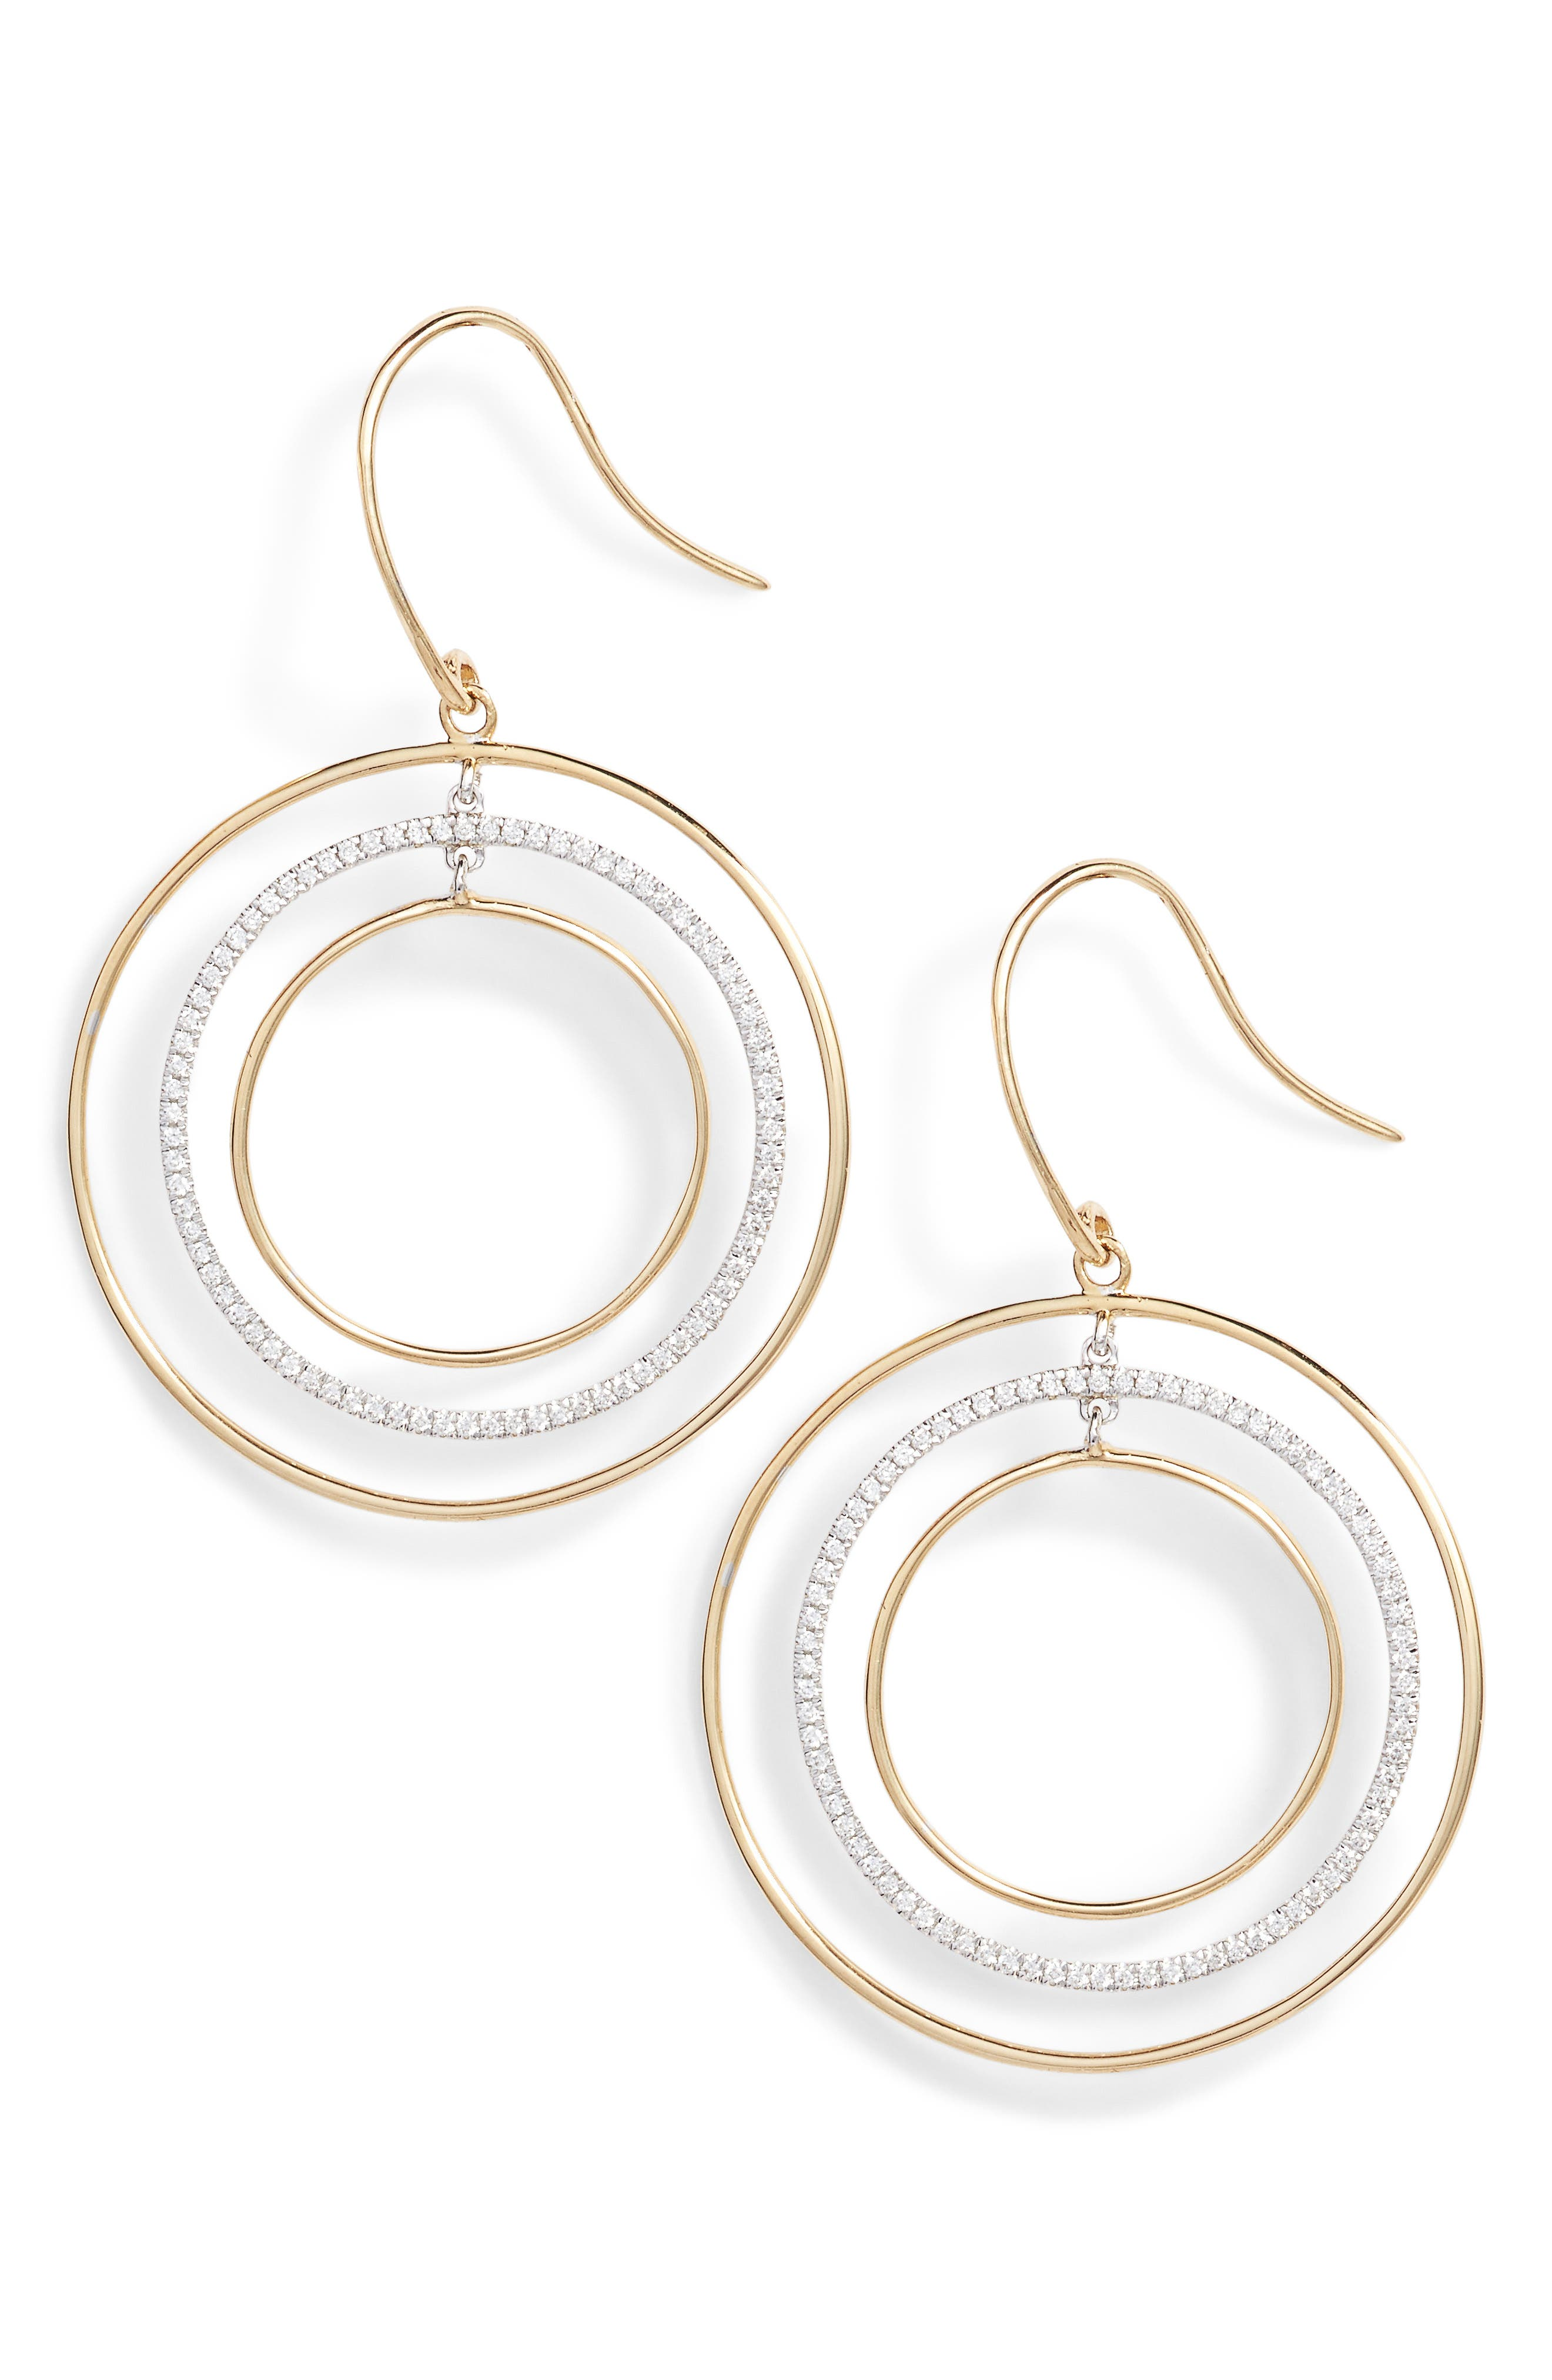 Prism Geometric Drop Earrings,                         Main,                         color, Yellow Gold/ White Gold